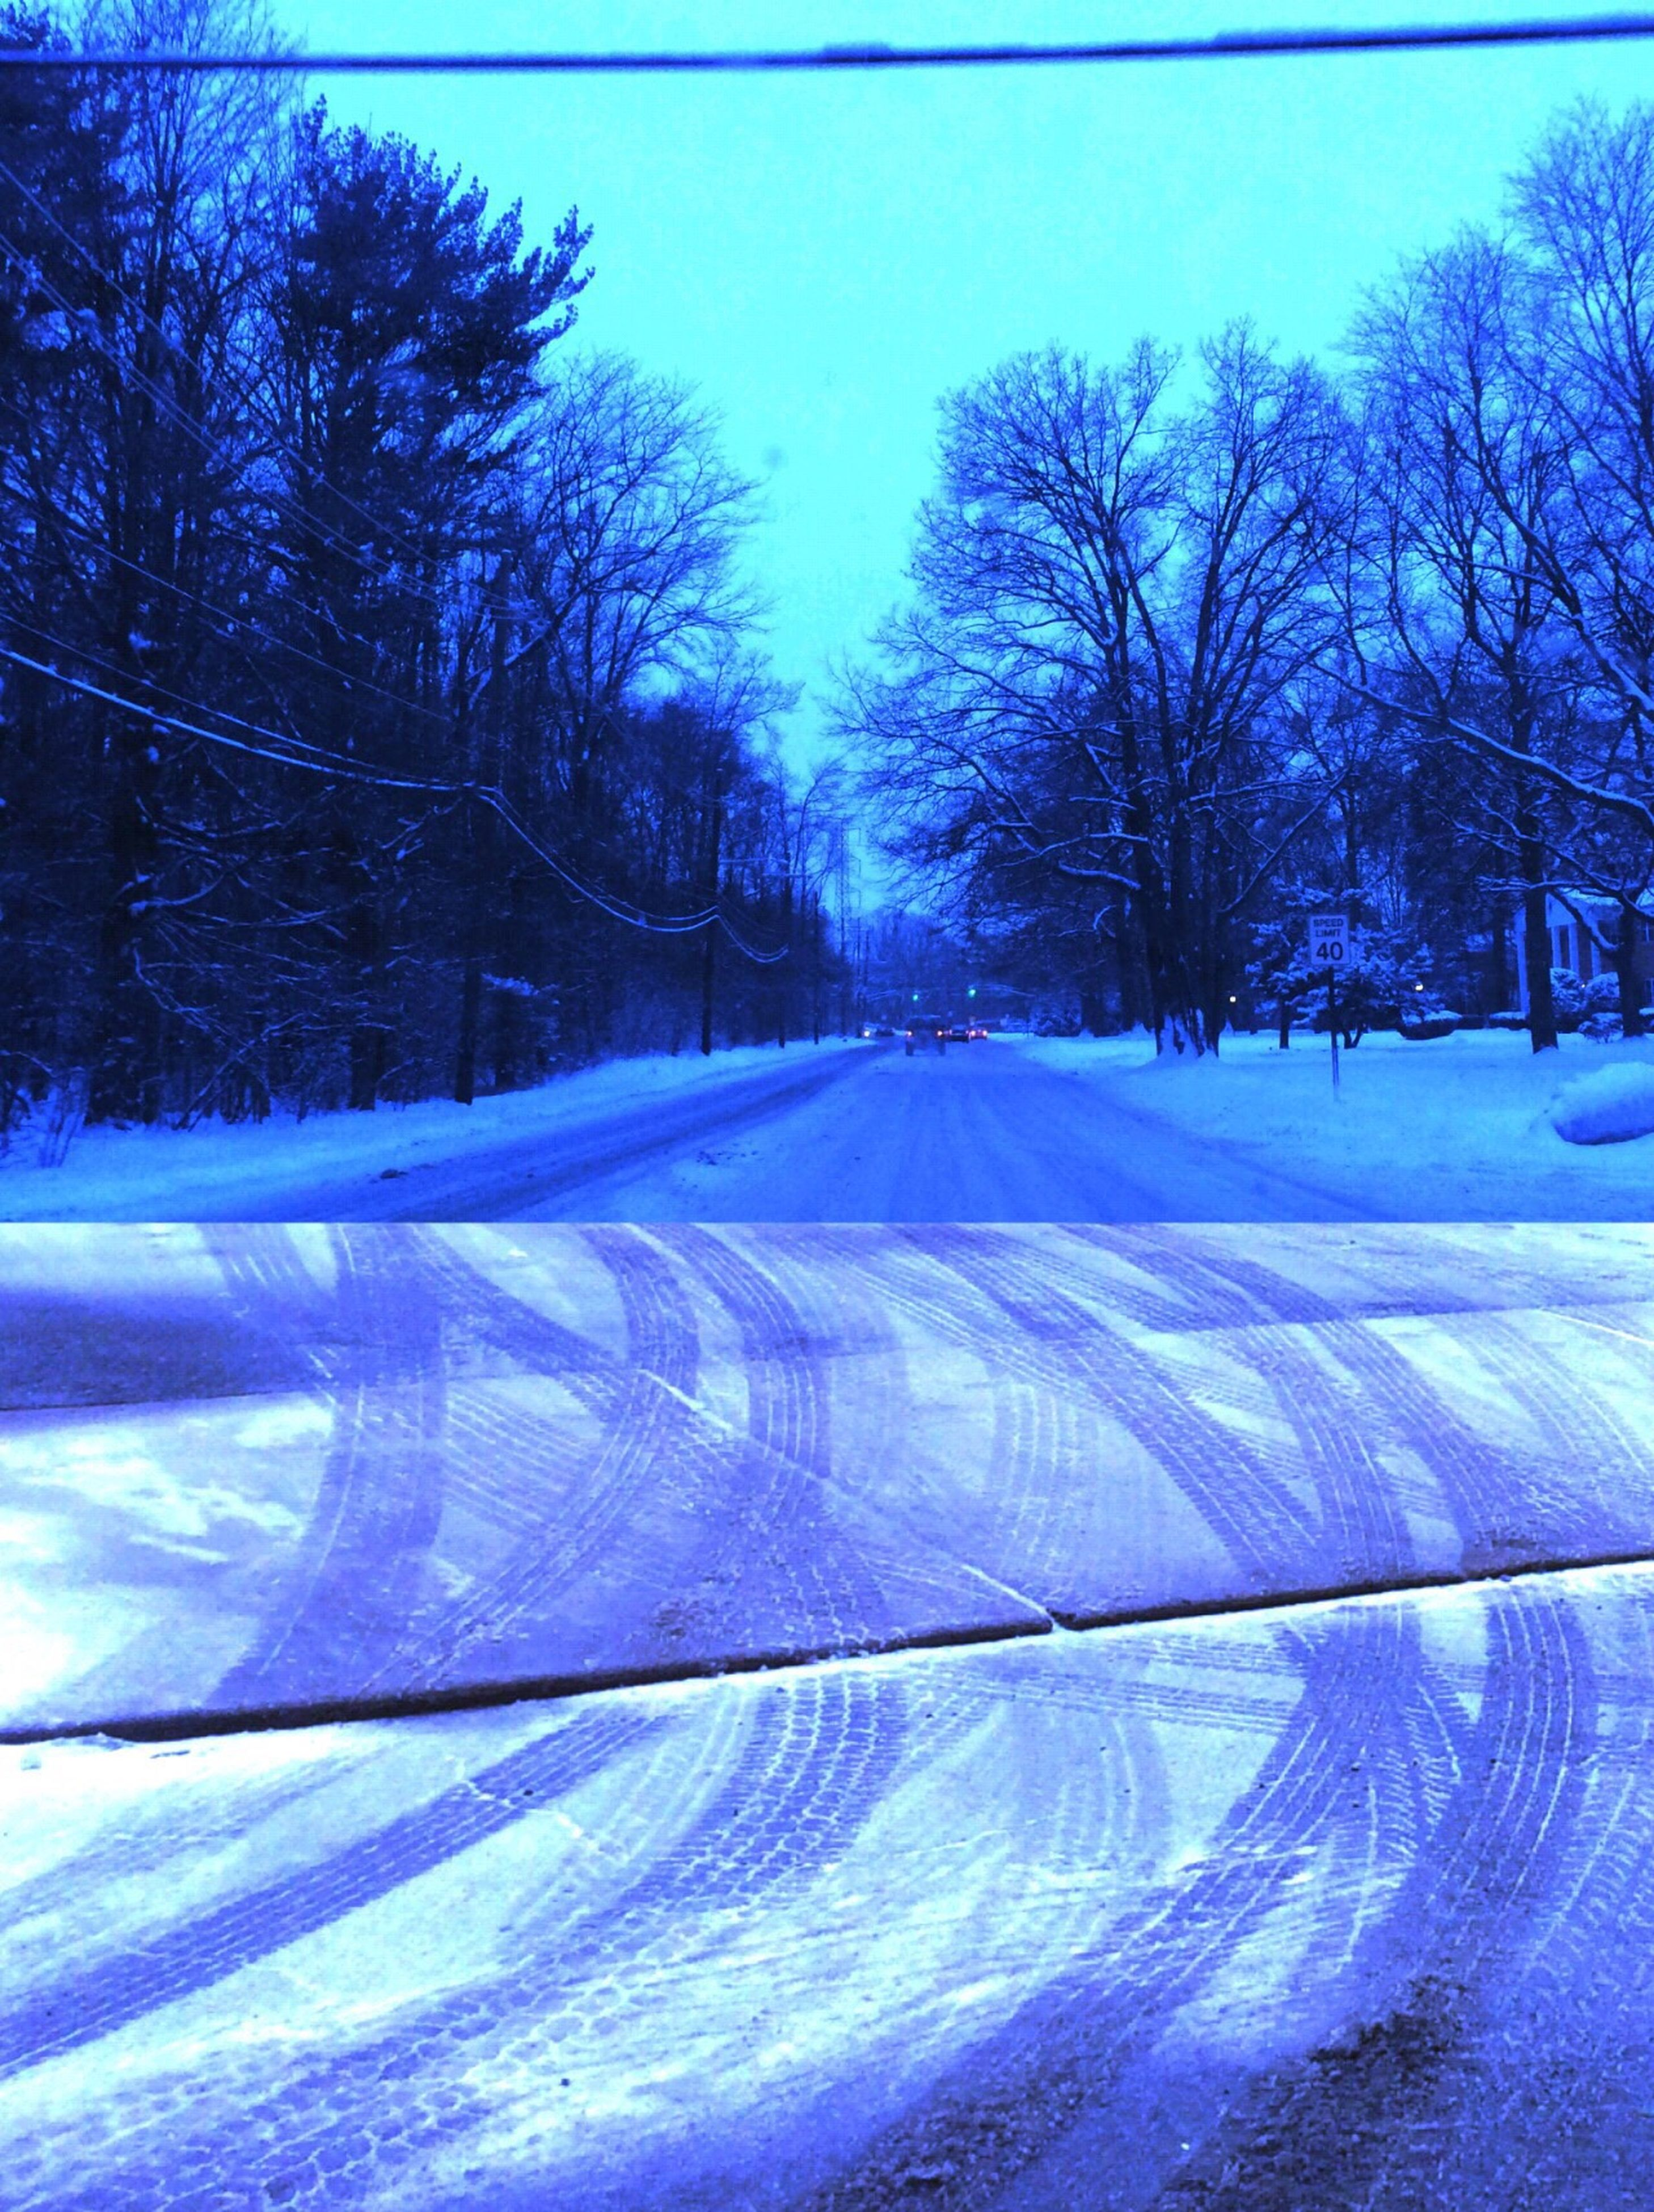 snow, winter, cold temperature, tree, bare tree, blue, season, clear sky, covering, weather, nature, road, white color, field, landscape, tranquil scene, transportation, tranquility, frozen, sky